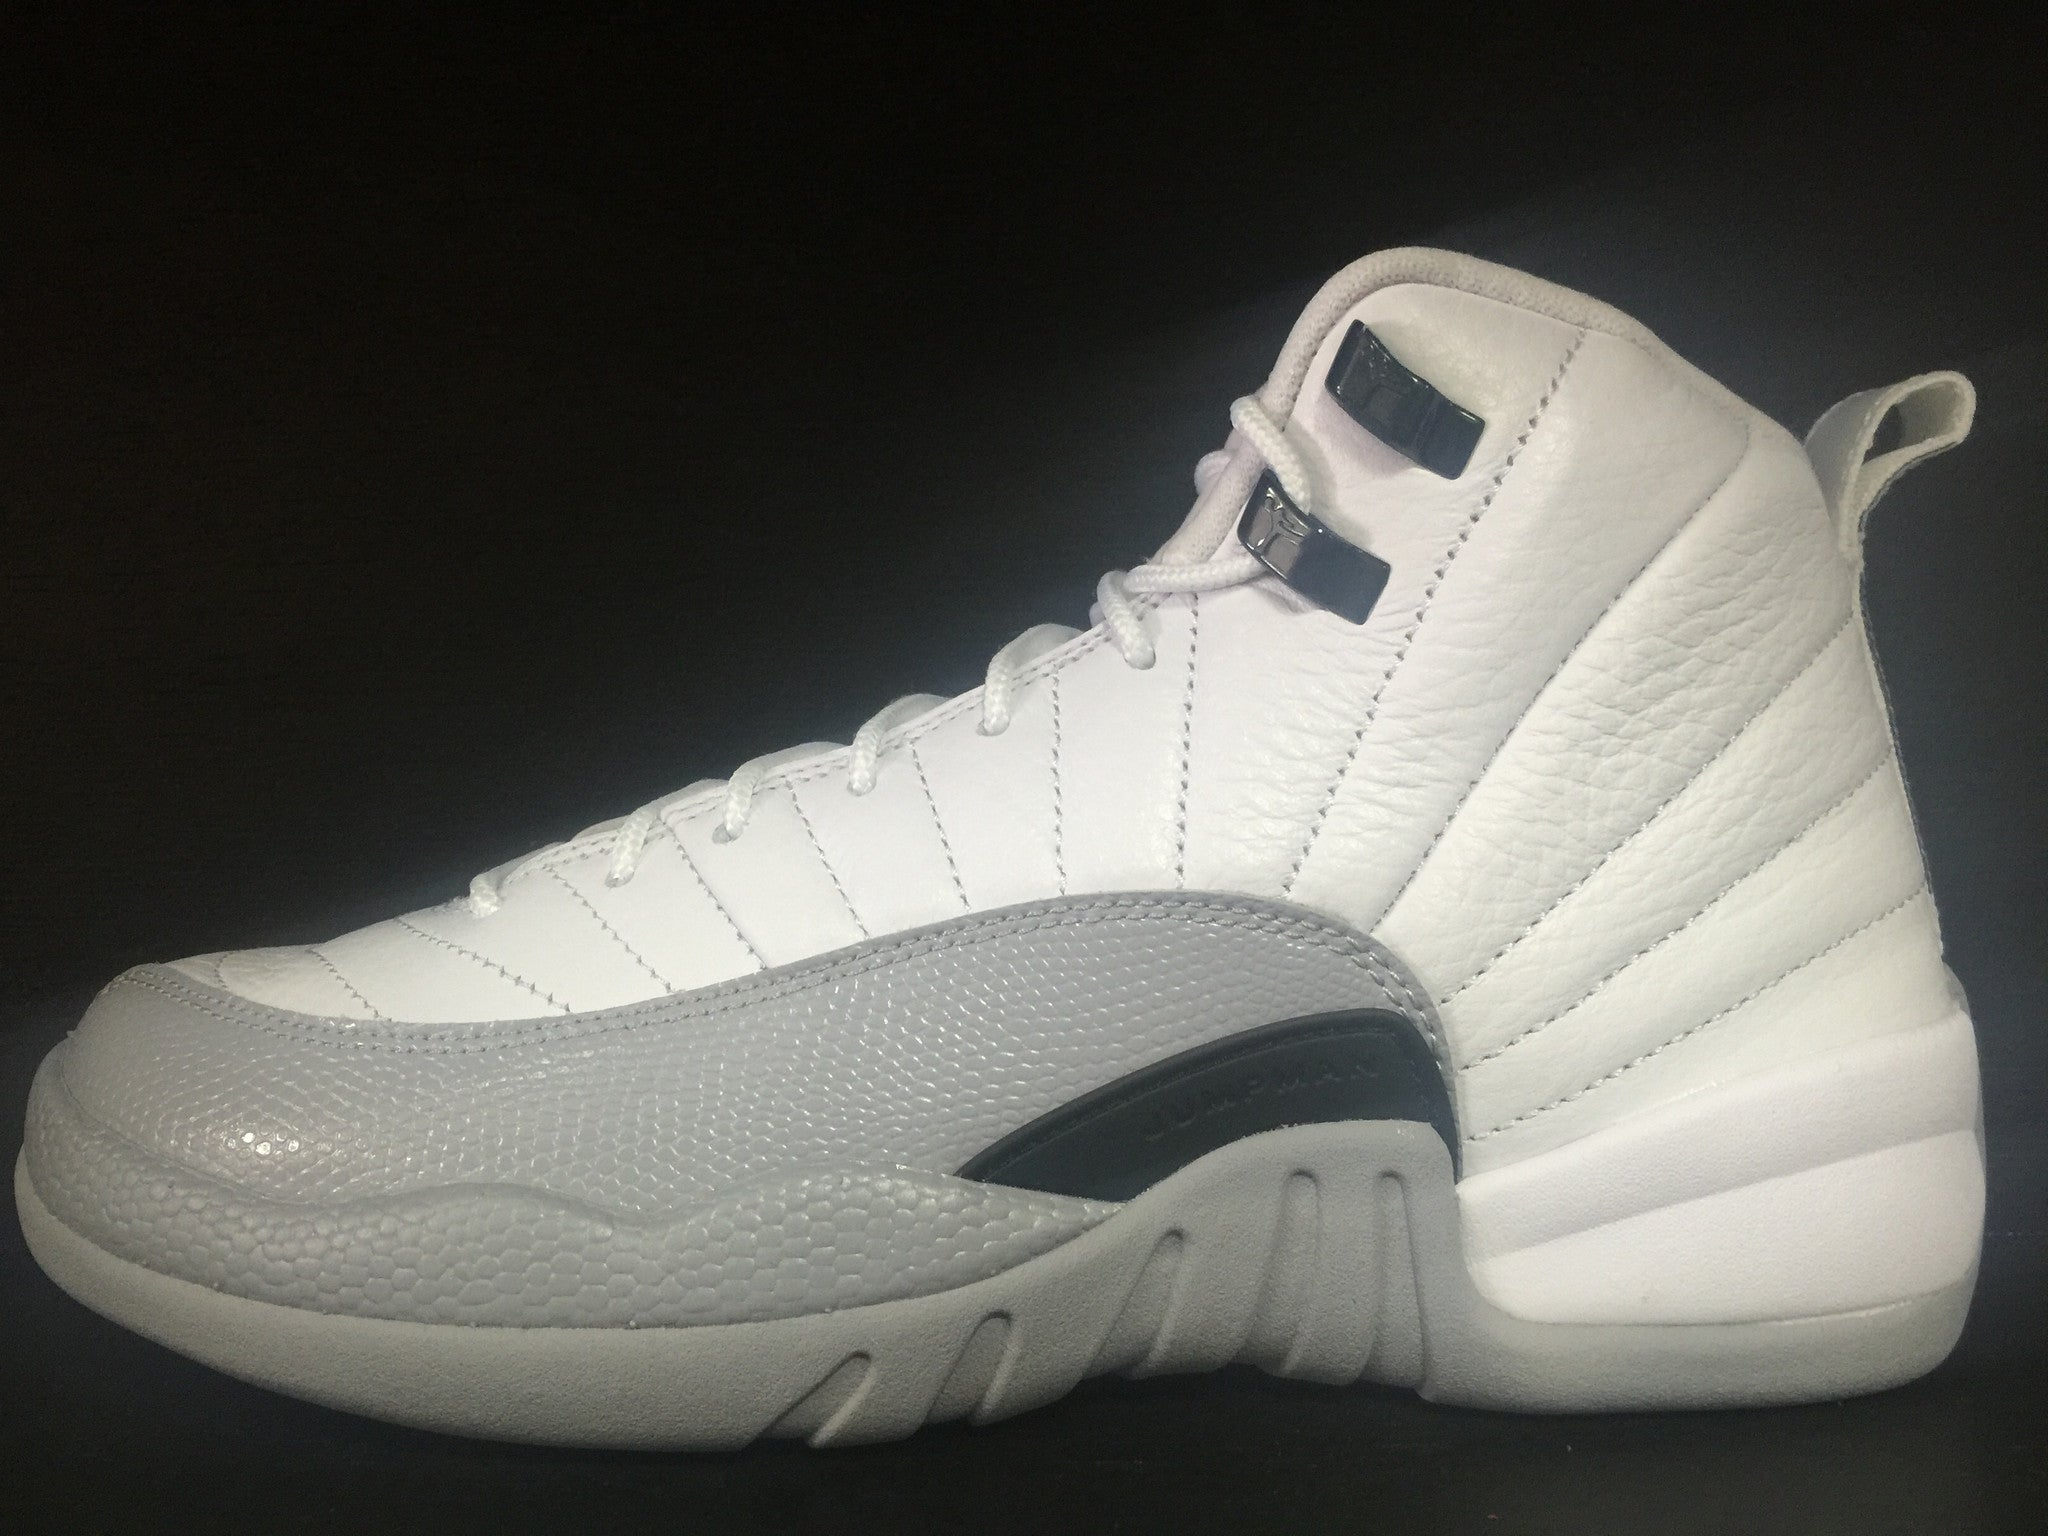 Air Jordan 12 Retro 'Barons' GS